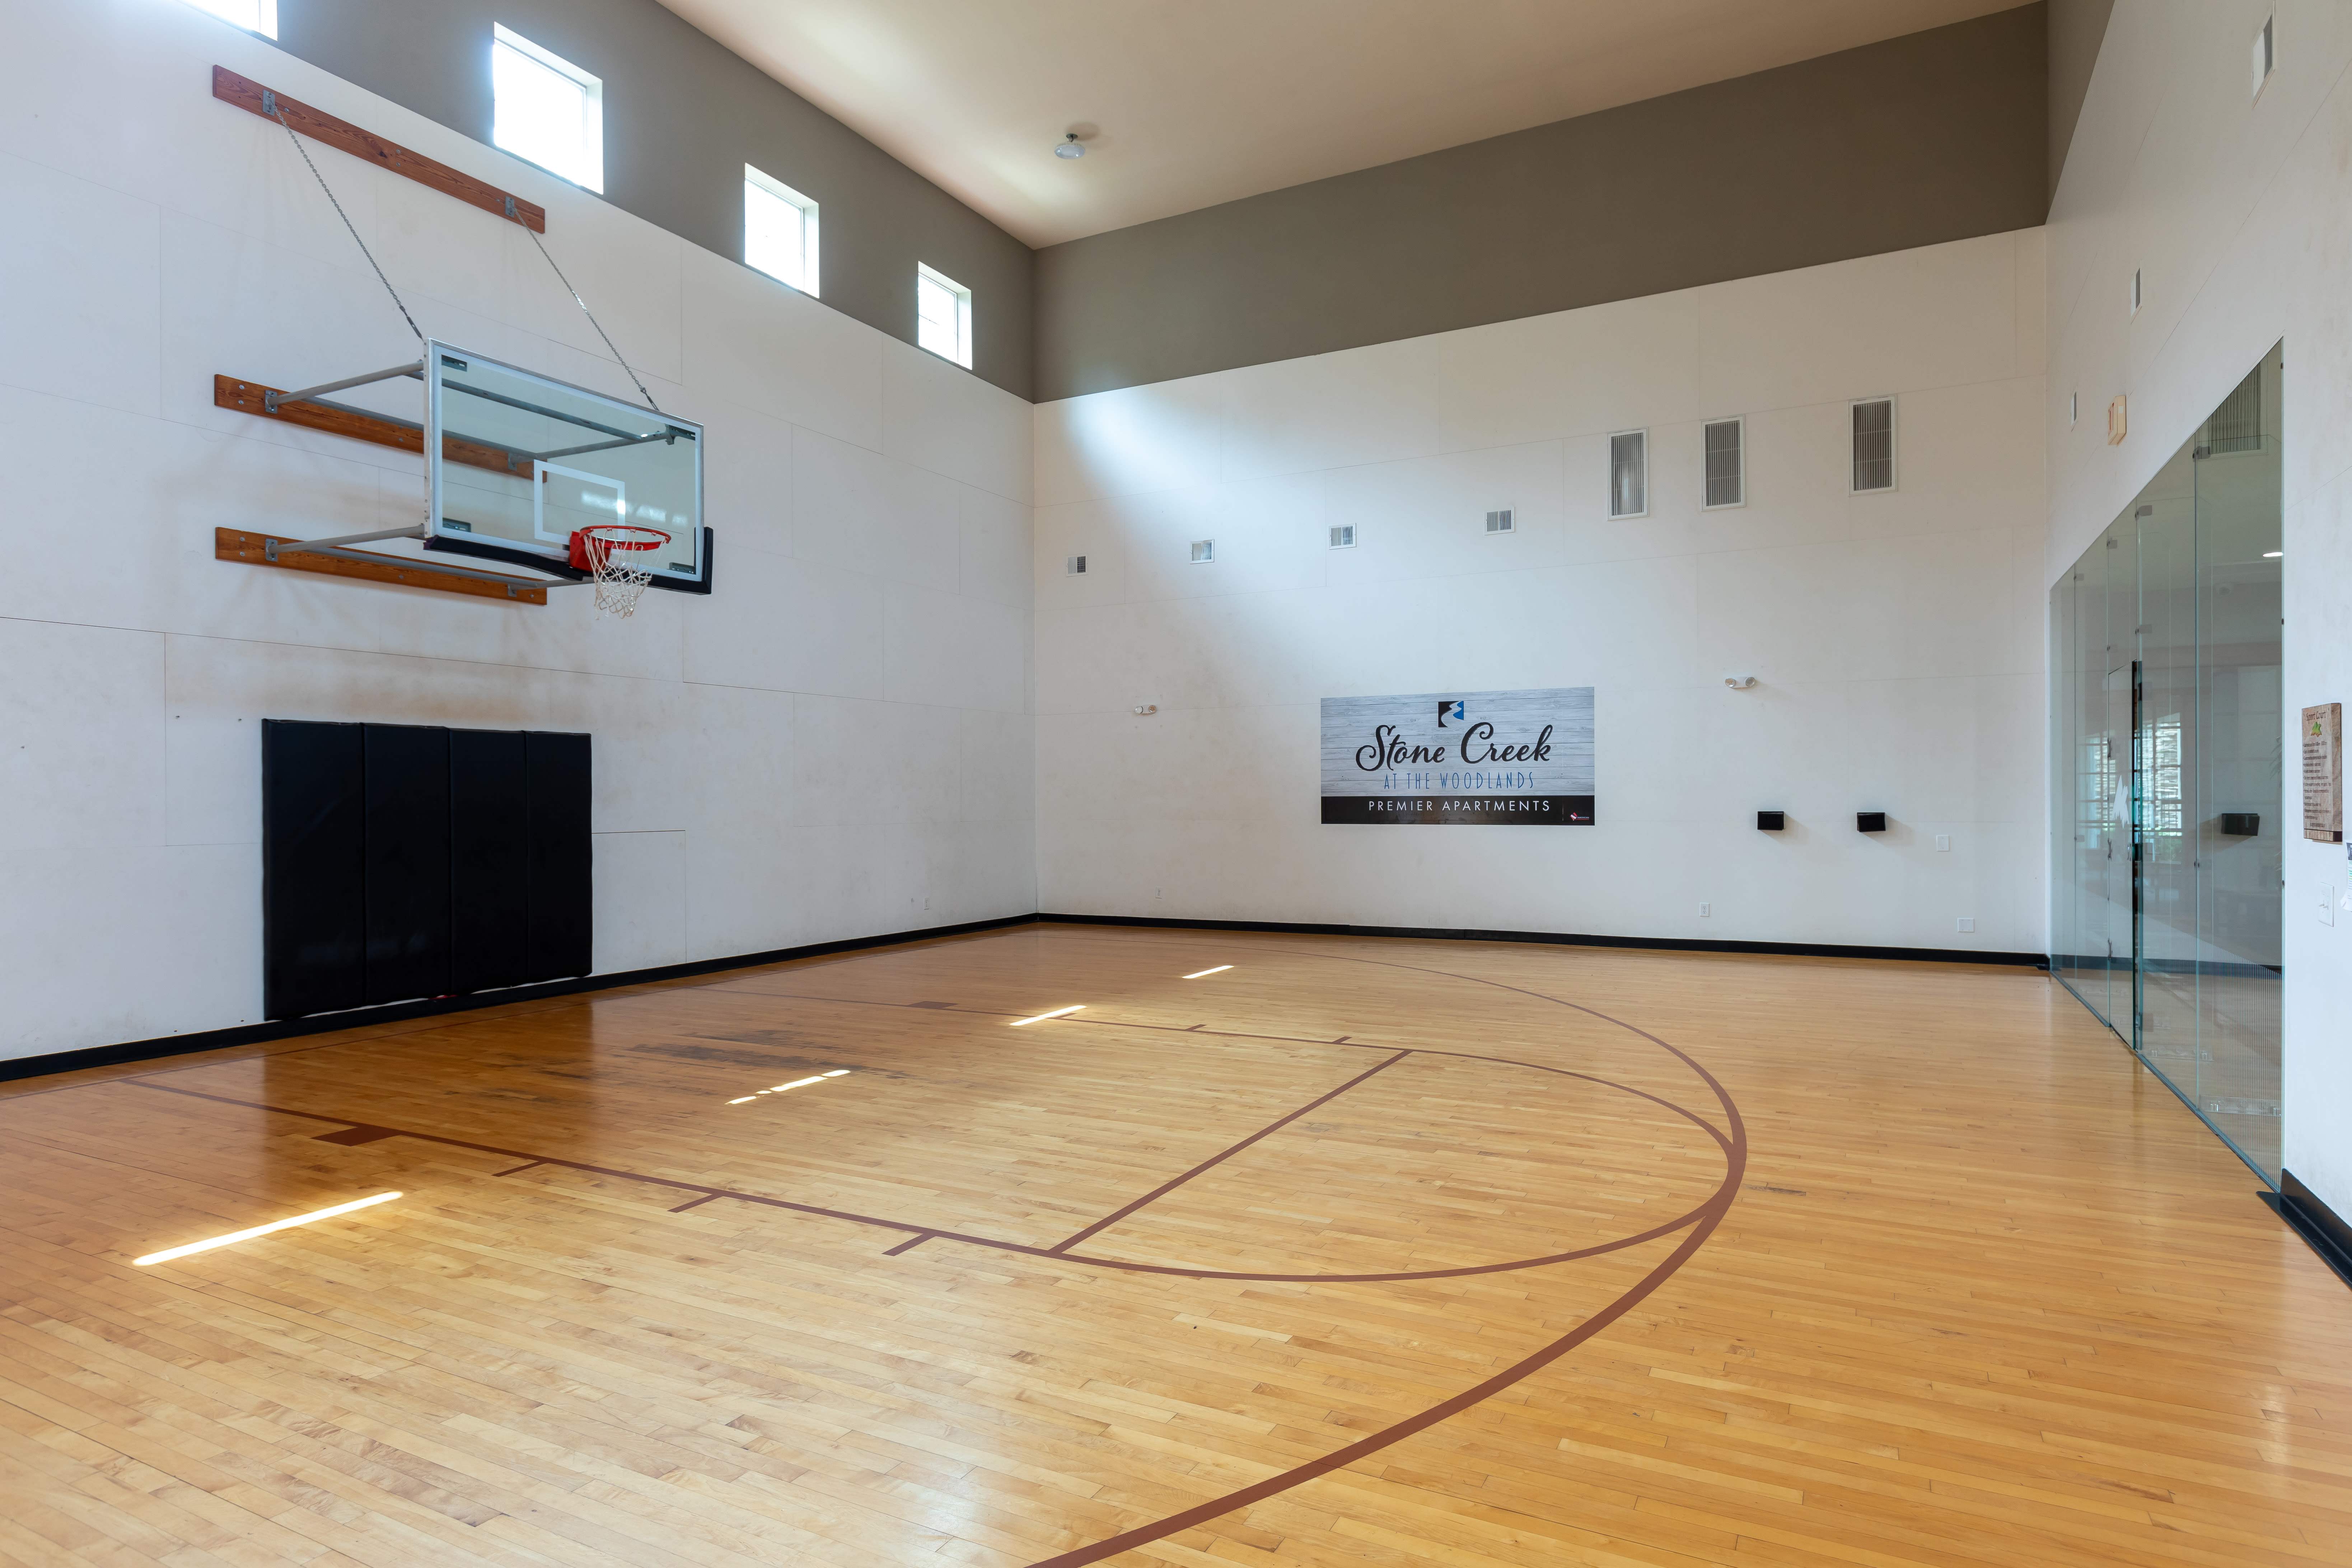 Indoor basketball court at Stone Creek at The Woodlands in The Woodlands, Texas